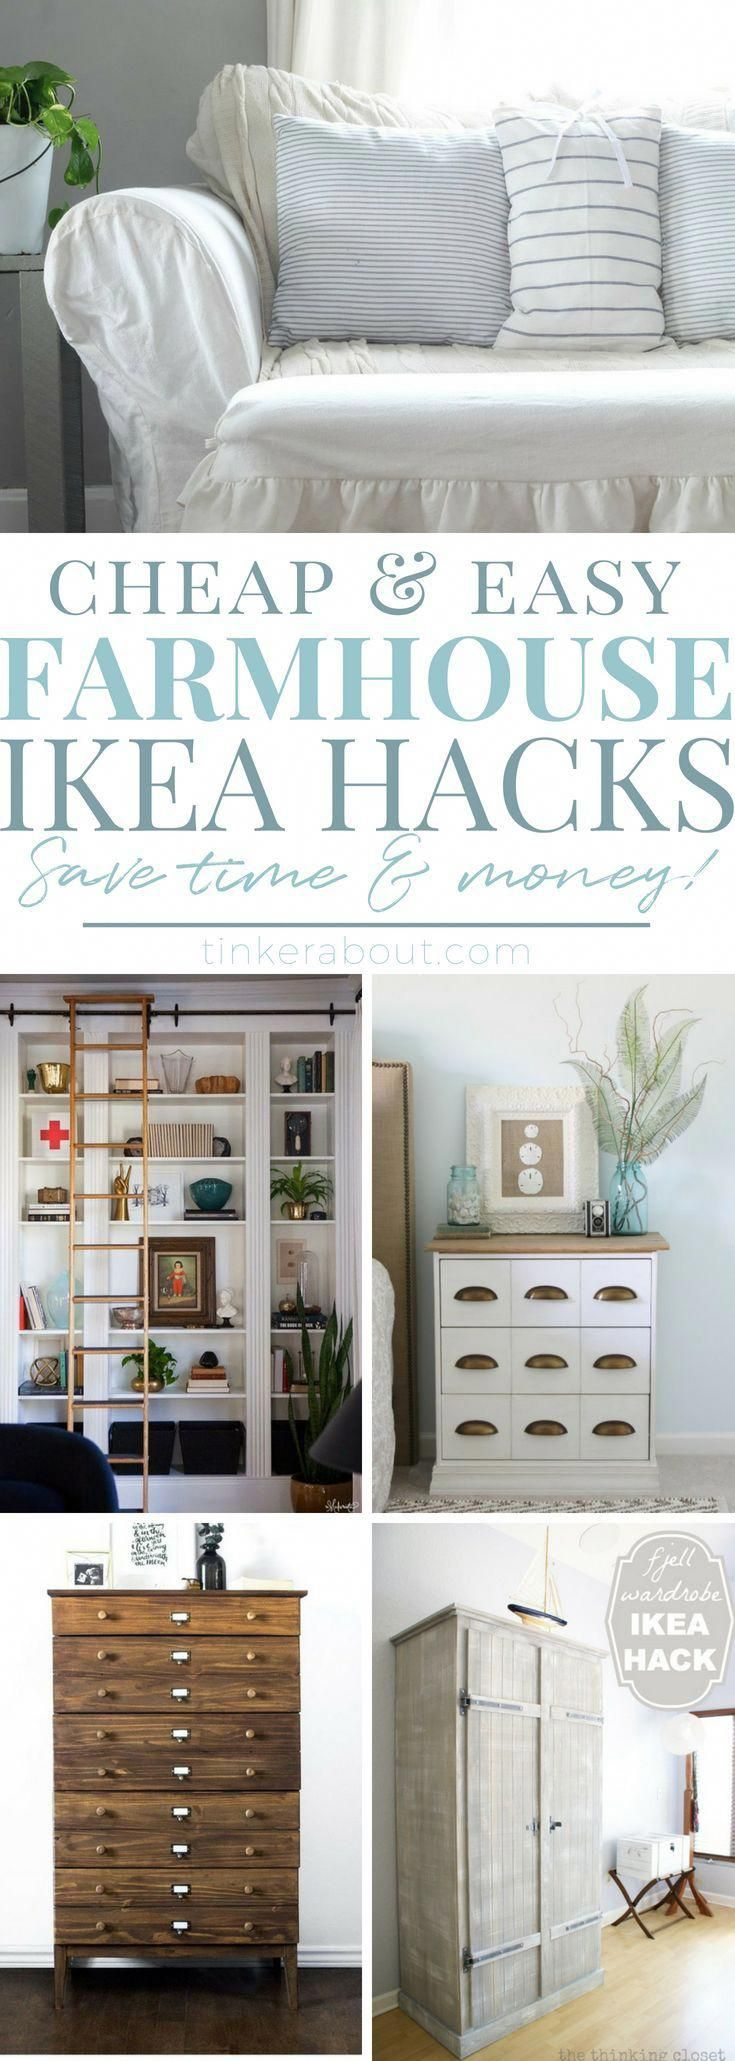 Update your home on a budget with these AMAZING Farmhouse Style Ikea Hacks! It w…